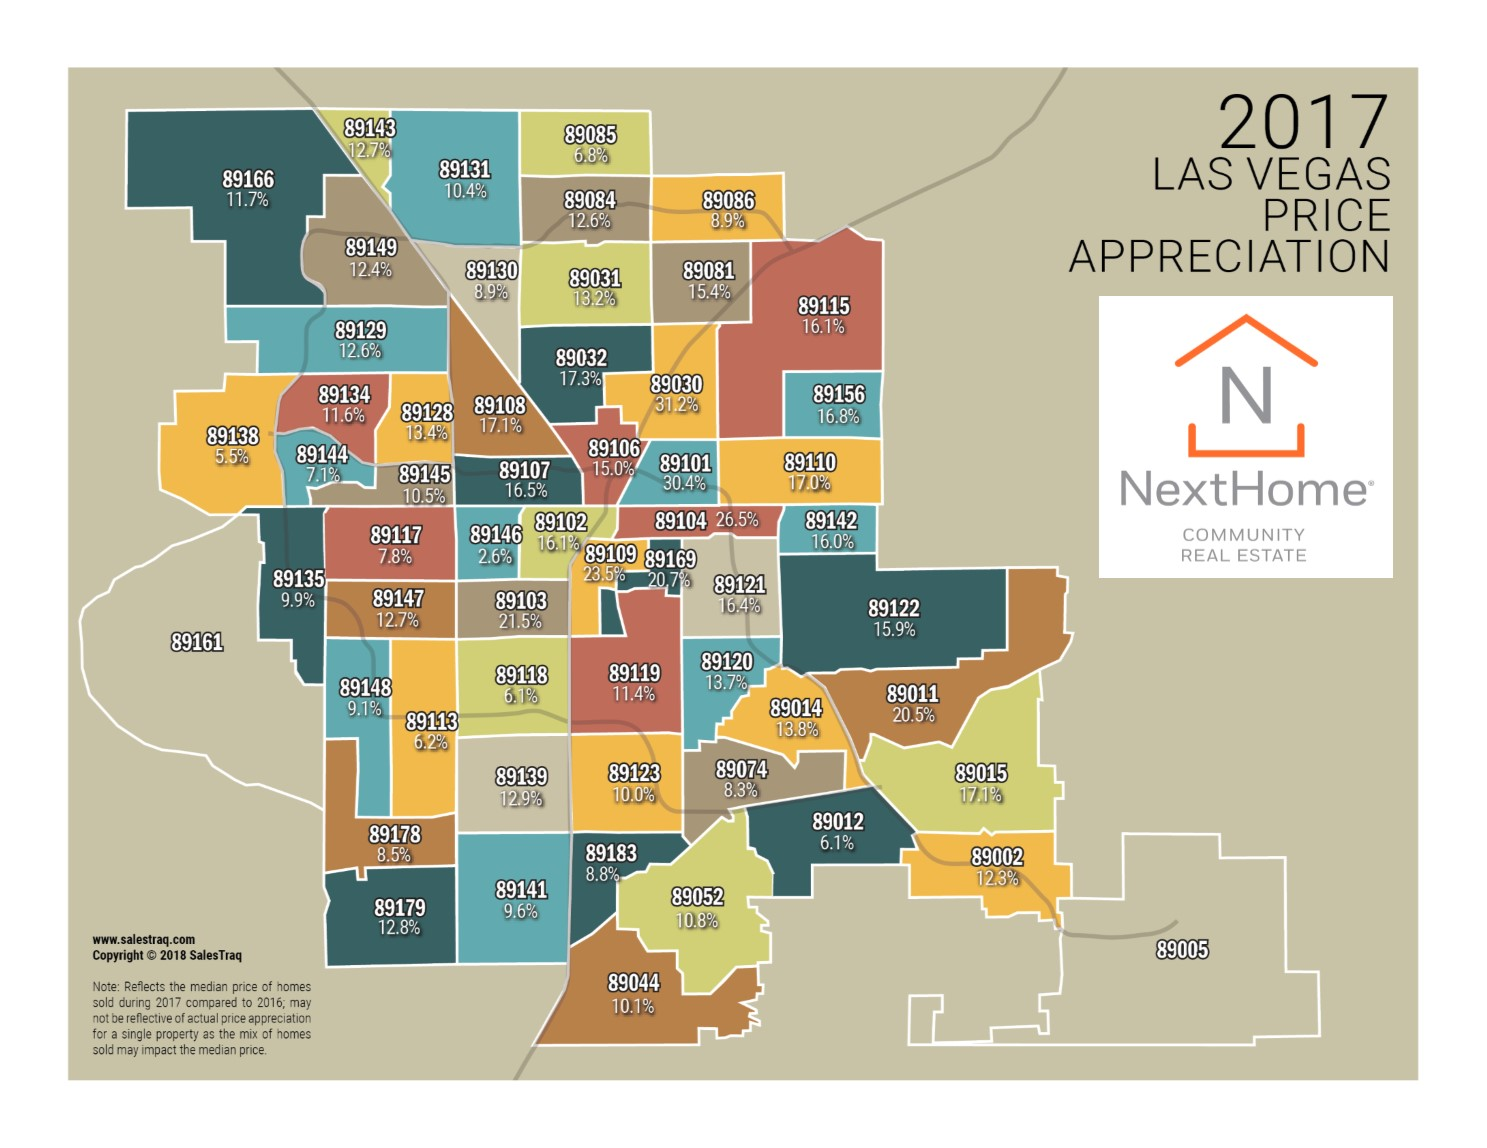 Las Vegas Zip Code Appreciation Map – The Torsiello Group